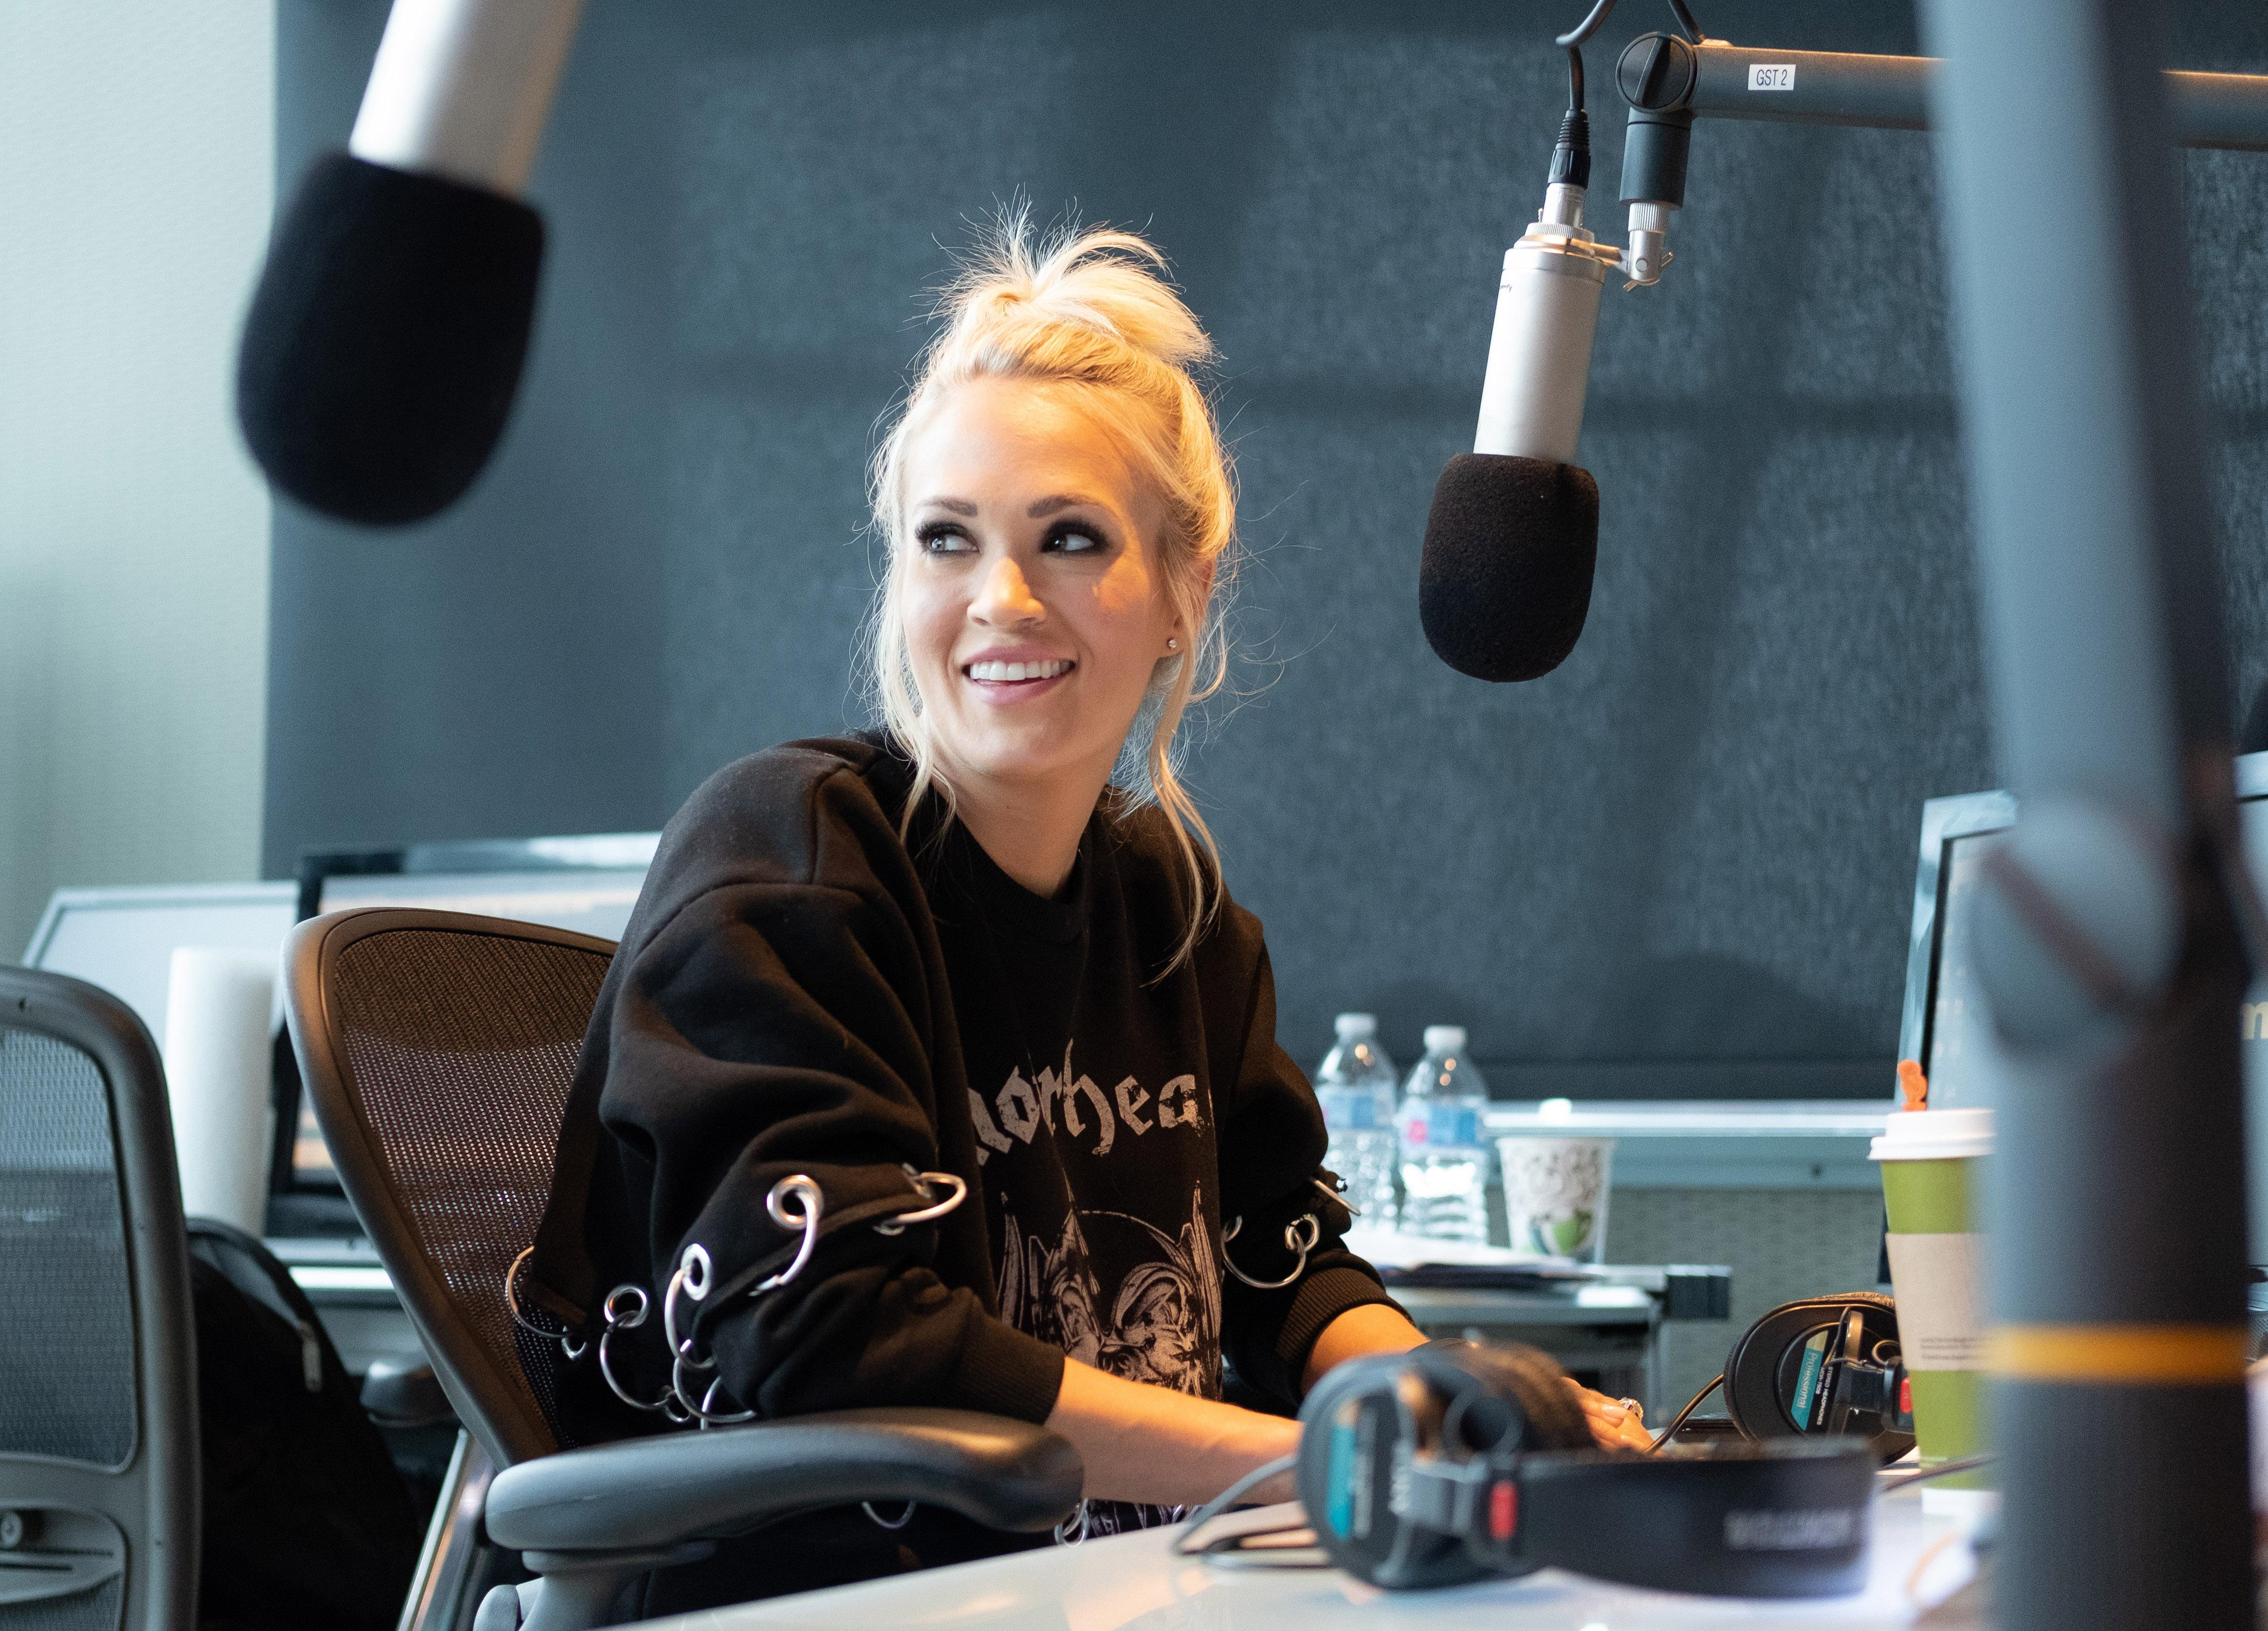 Carrie Underwood details brutal fall, says she was worried son would be 'scared' of her